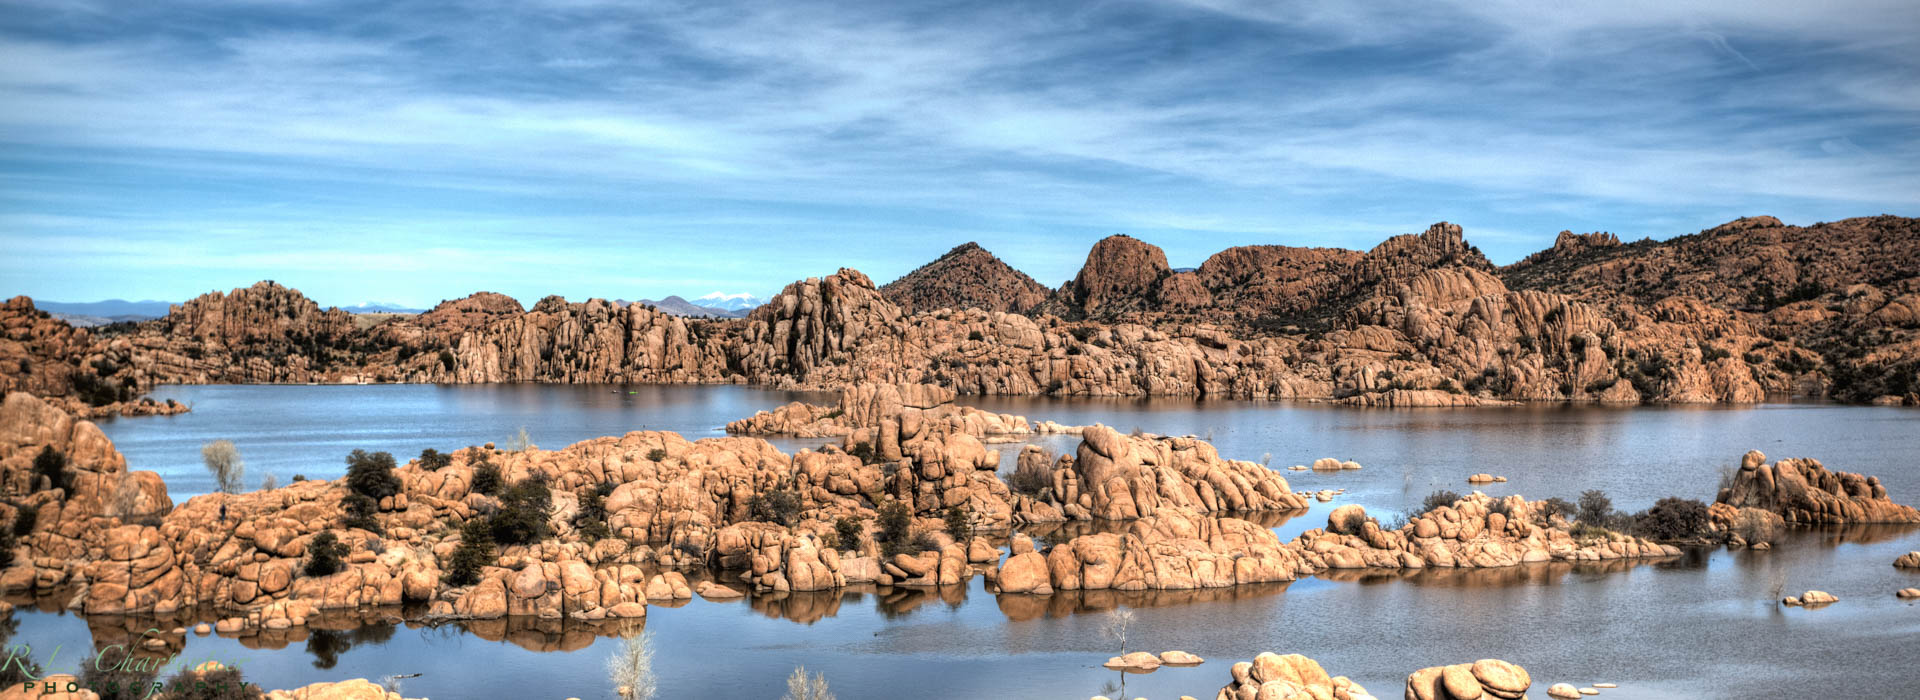 Lodging near the Granite Dells Prescott Arizona